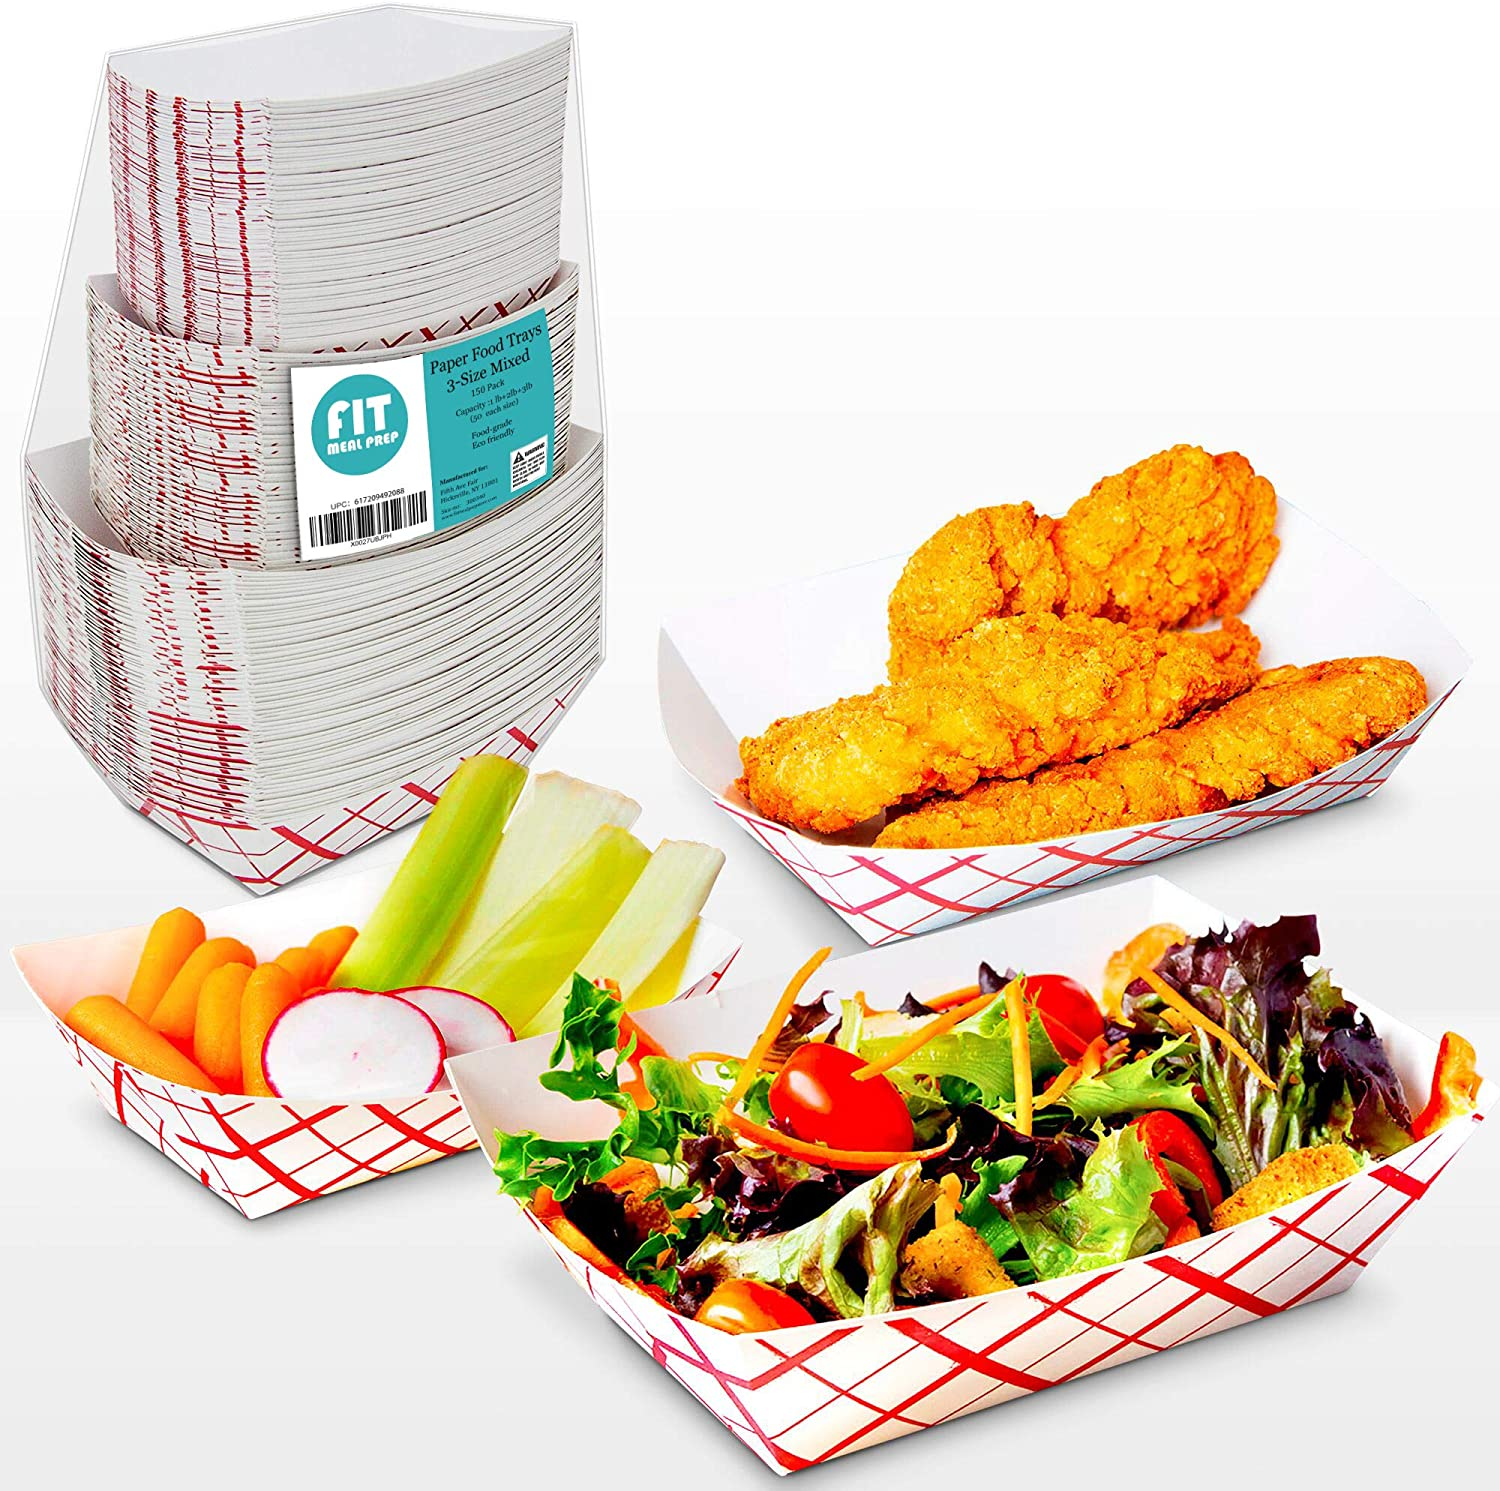 [150 Pack] 1lb, 2lb, 3lb Paper Food Trays - Red White Disposable Grease Resistant Serving Plate, Paperboard Boat Basket for Parties Fairs Picnic Carnival Holds Tacos Nachos Fries Hot Corndog, 50 each